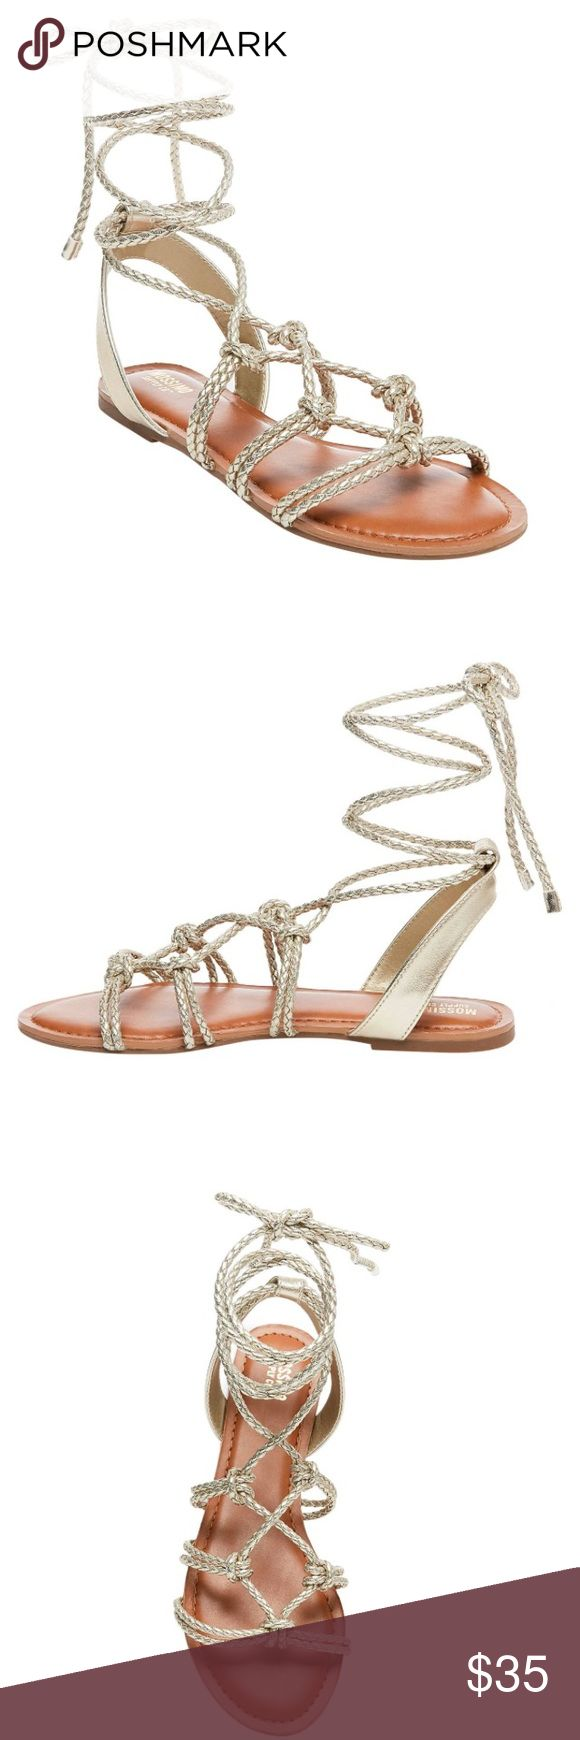 Women's  Gladiator Sandals NEW 💜 The braided ankle strap brings a touch of boho to these fun and fashion-forward women's sandals. Shoes Sandals